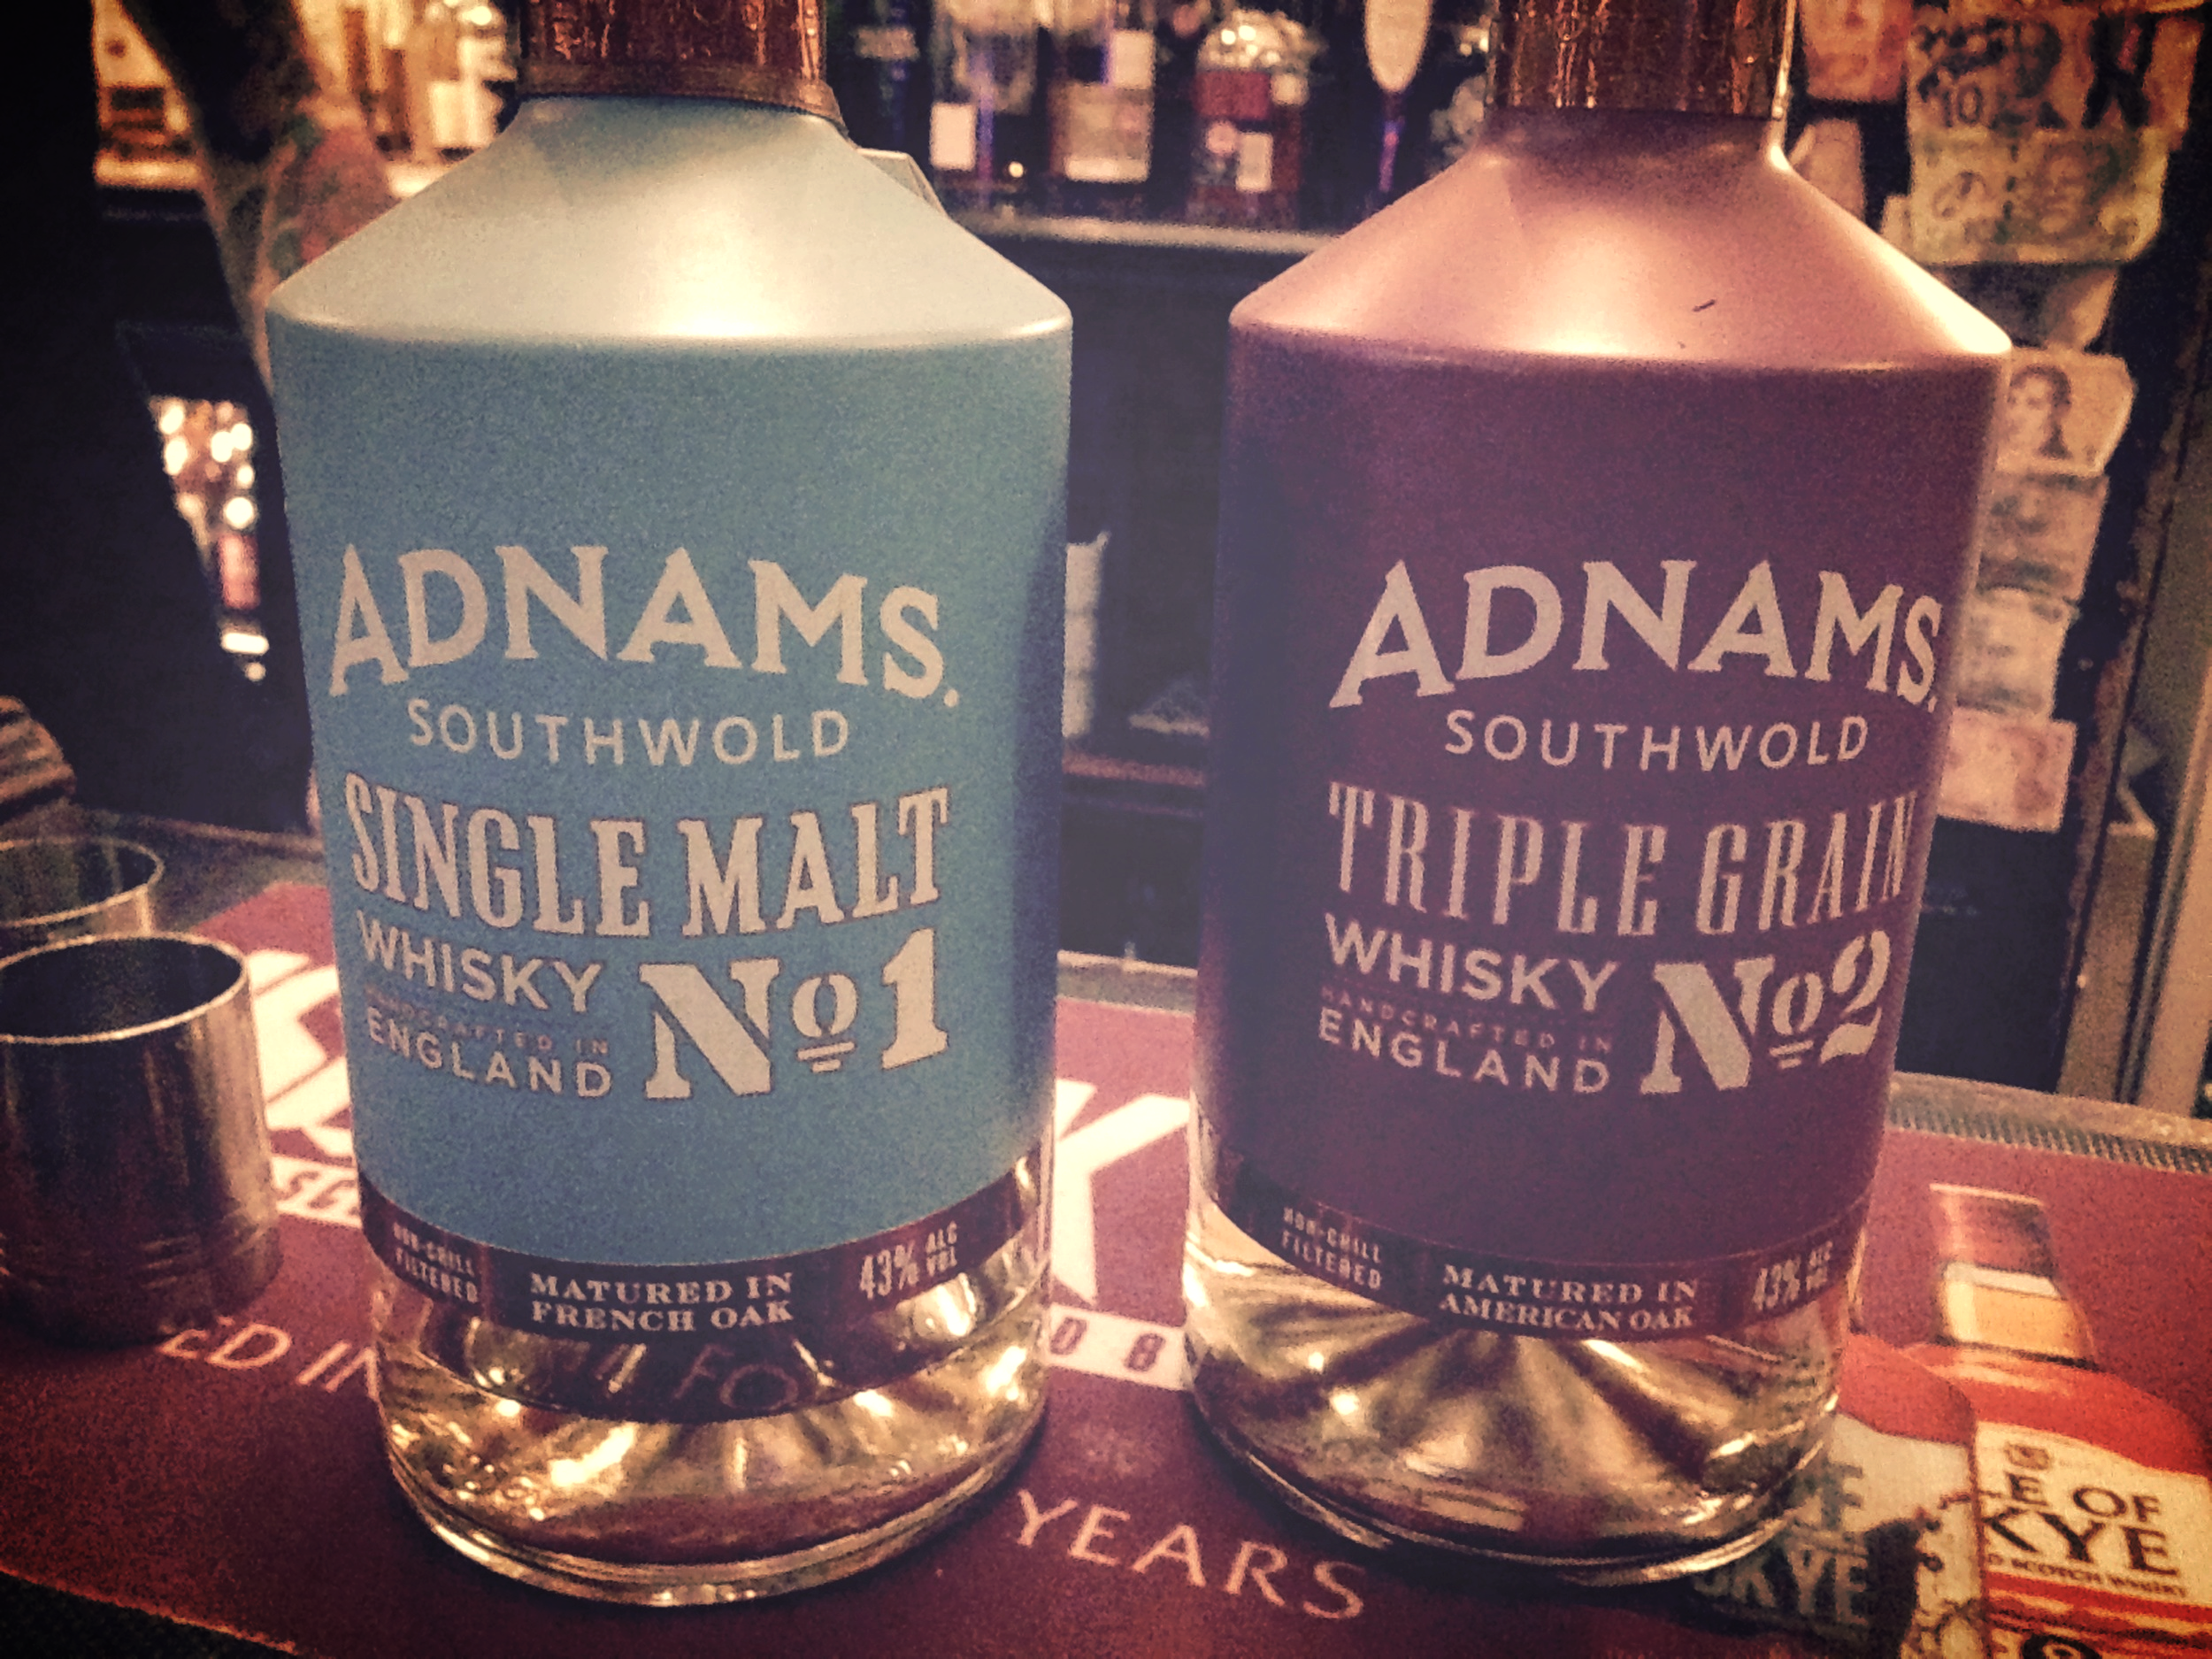 Adnams Whisky at the Pot Still whisky bar